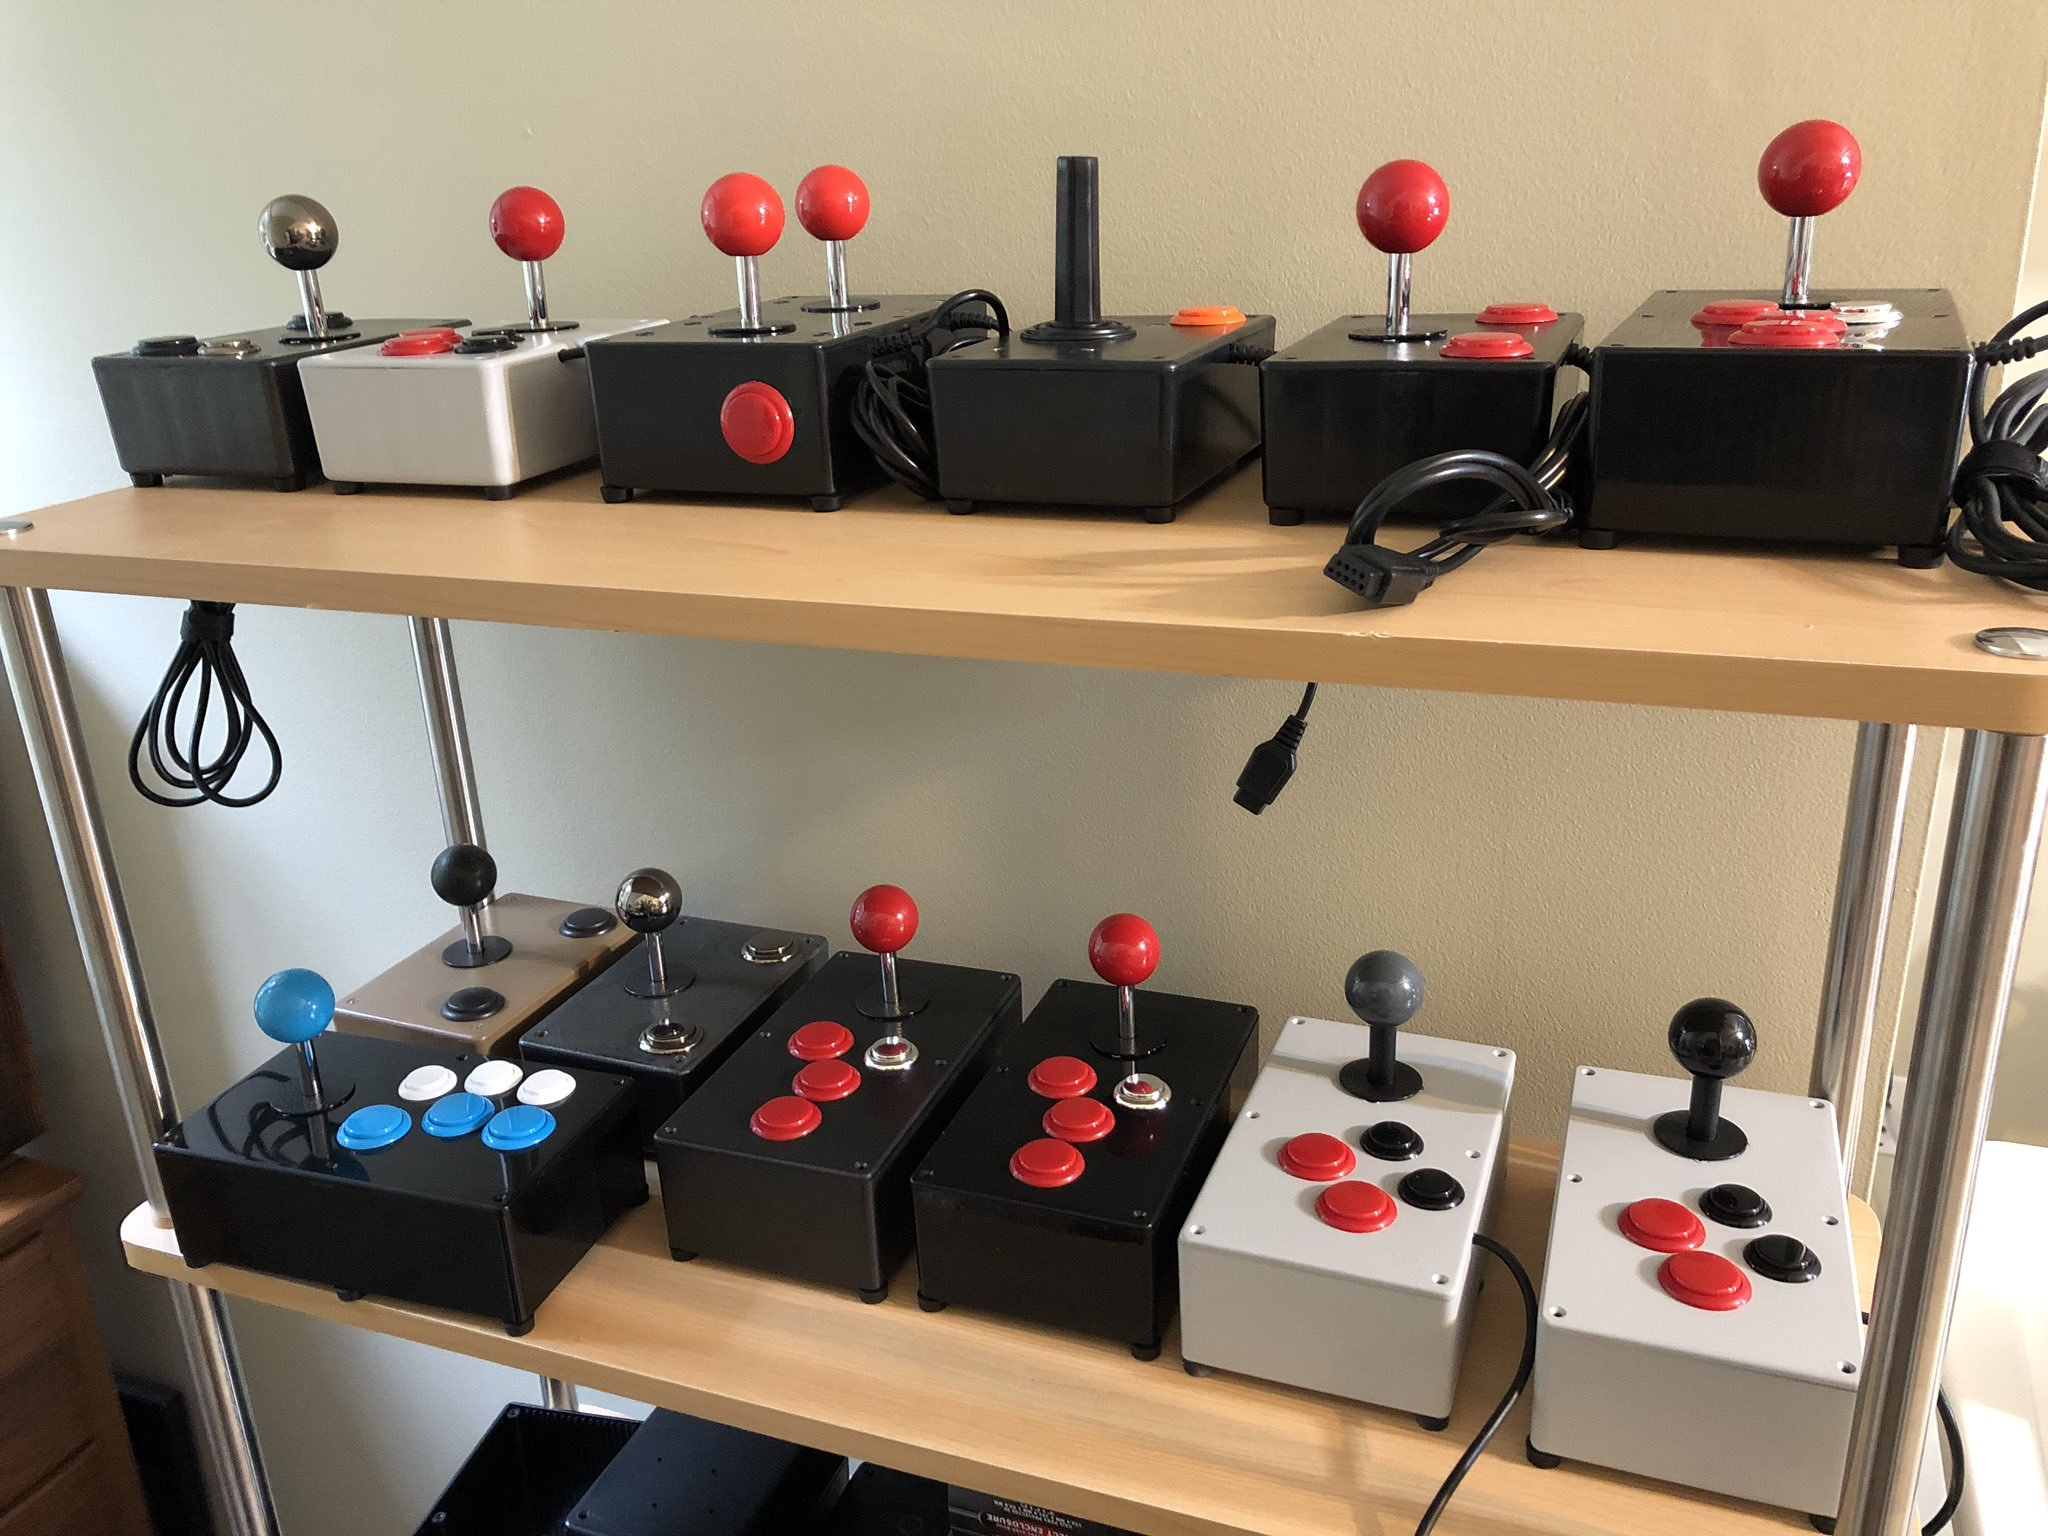 VC&G | » I've Been Building Joysticks